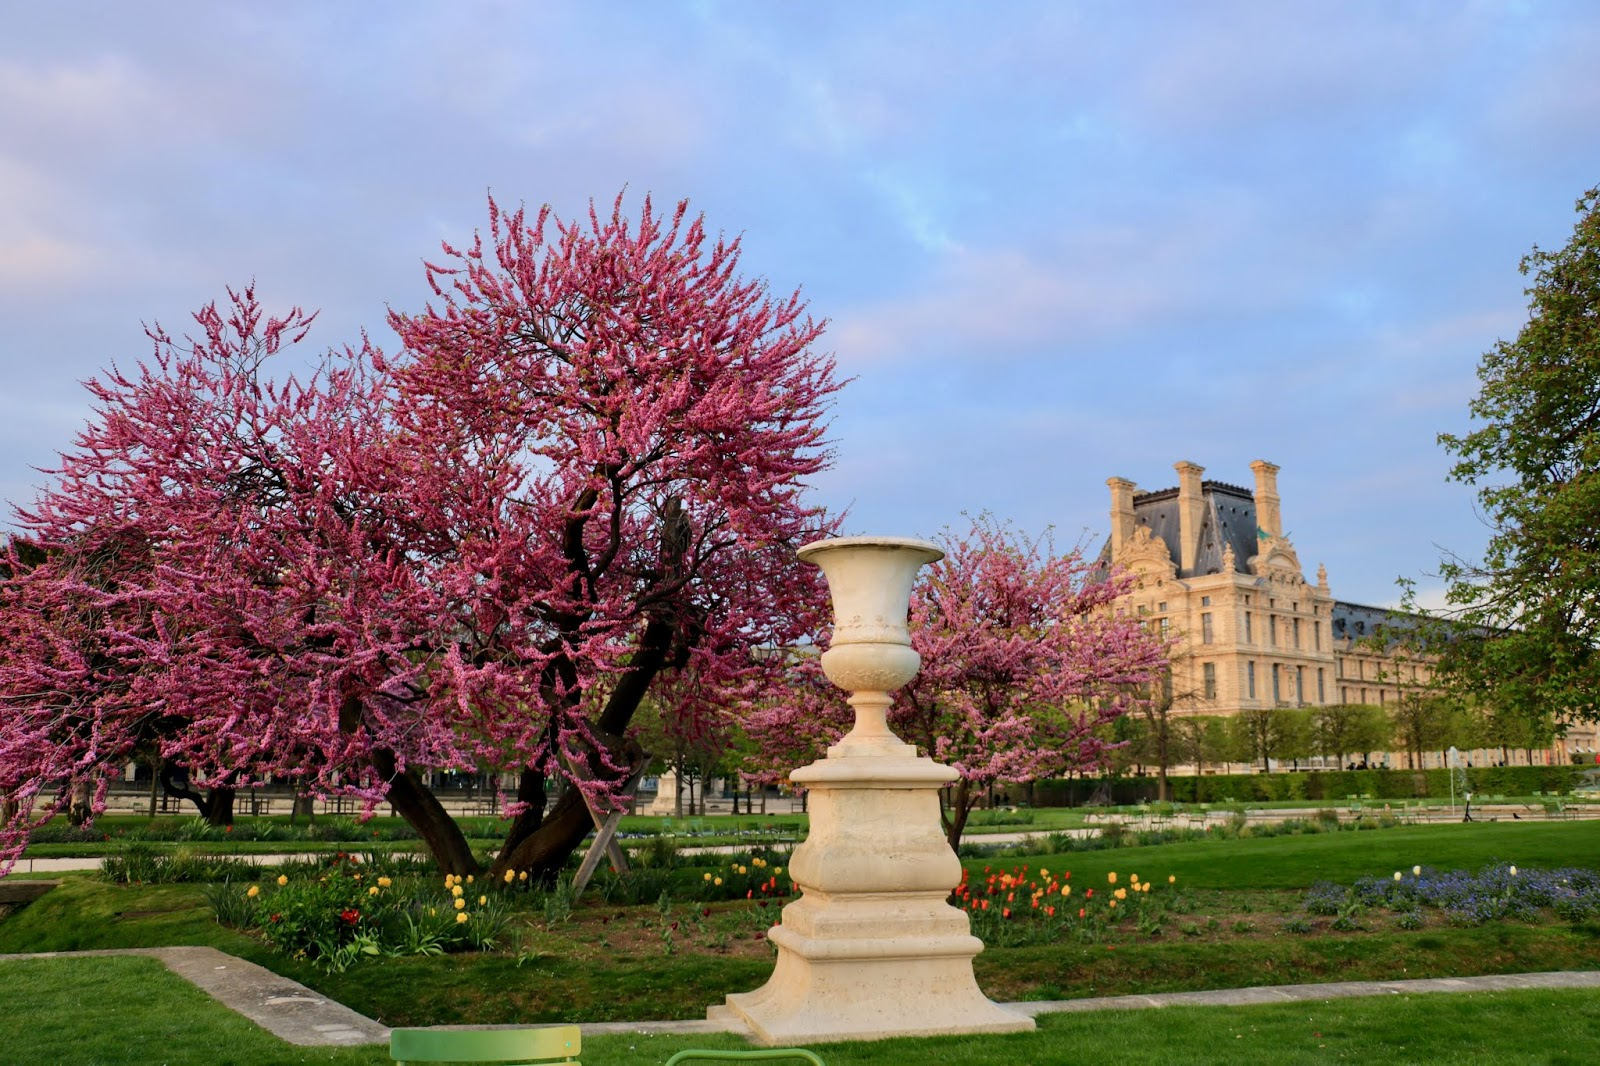 Tuileries Garden April 2019